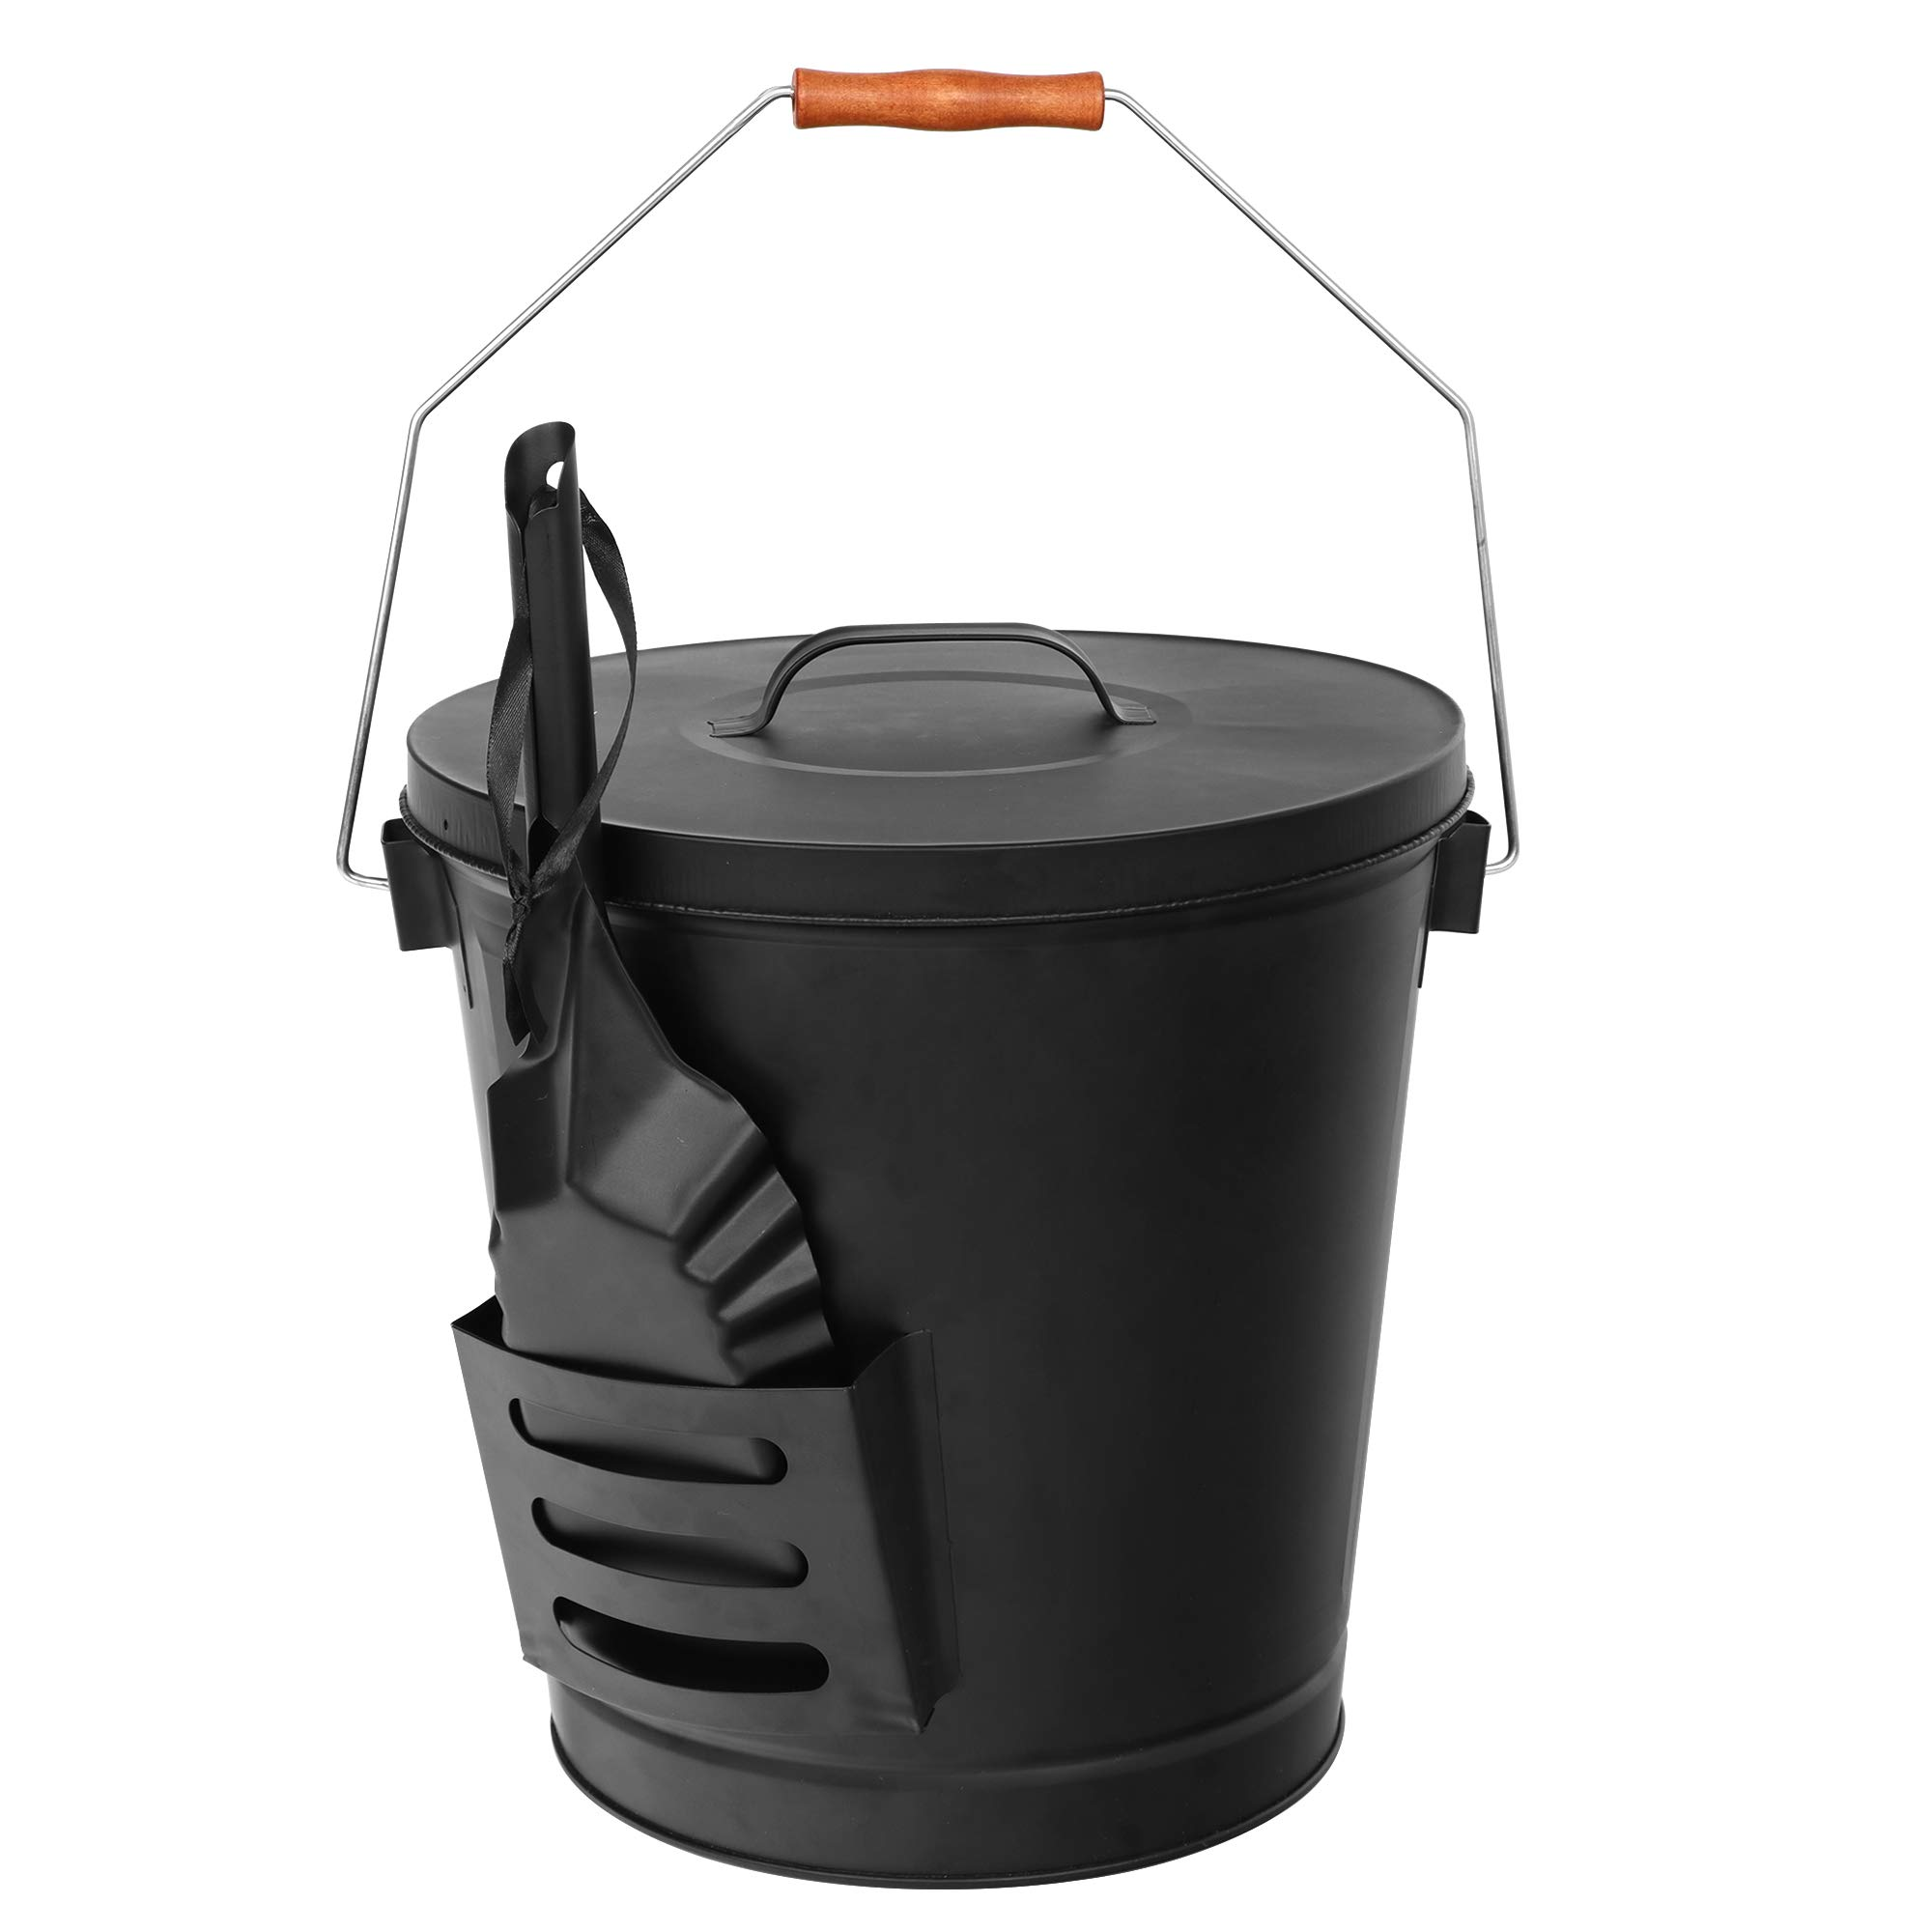 F2C 5.15 Gallon Ash Bucket with Lid and Shovel Galvanized Iron Ash Pail for Fireplace, Fire Pits, Wood Burning Stoves by F2C